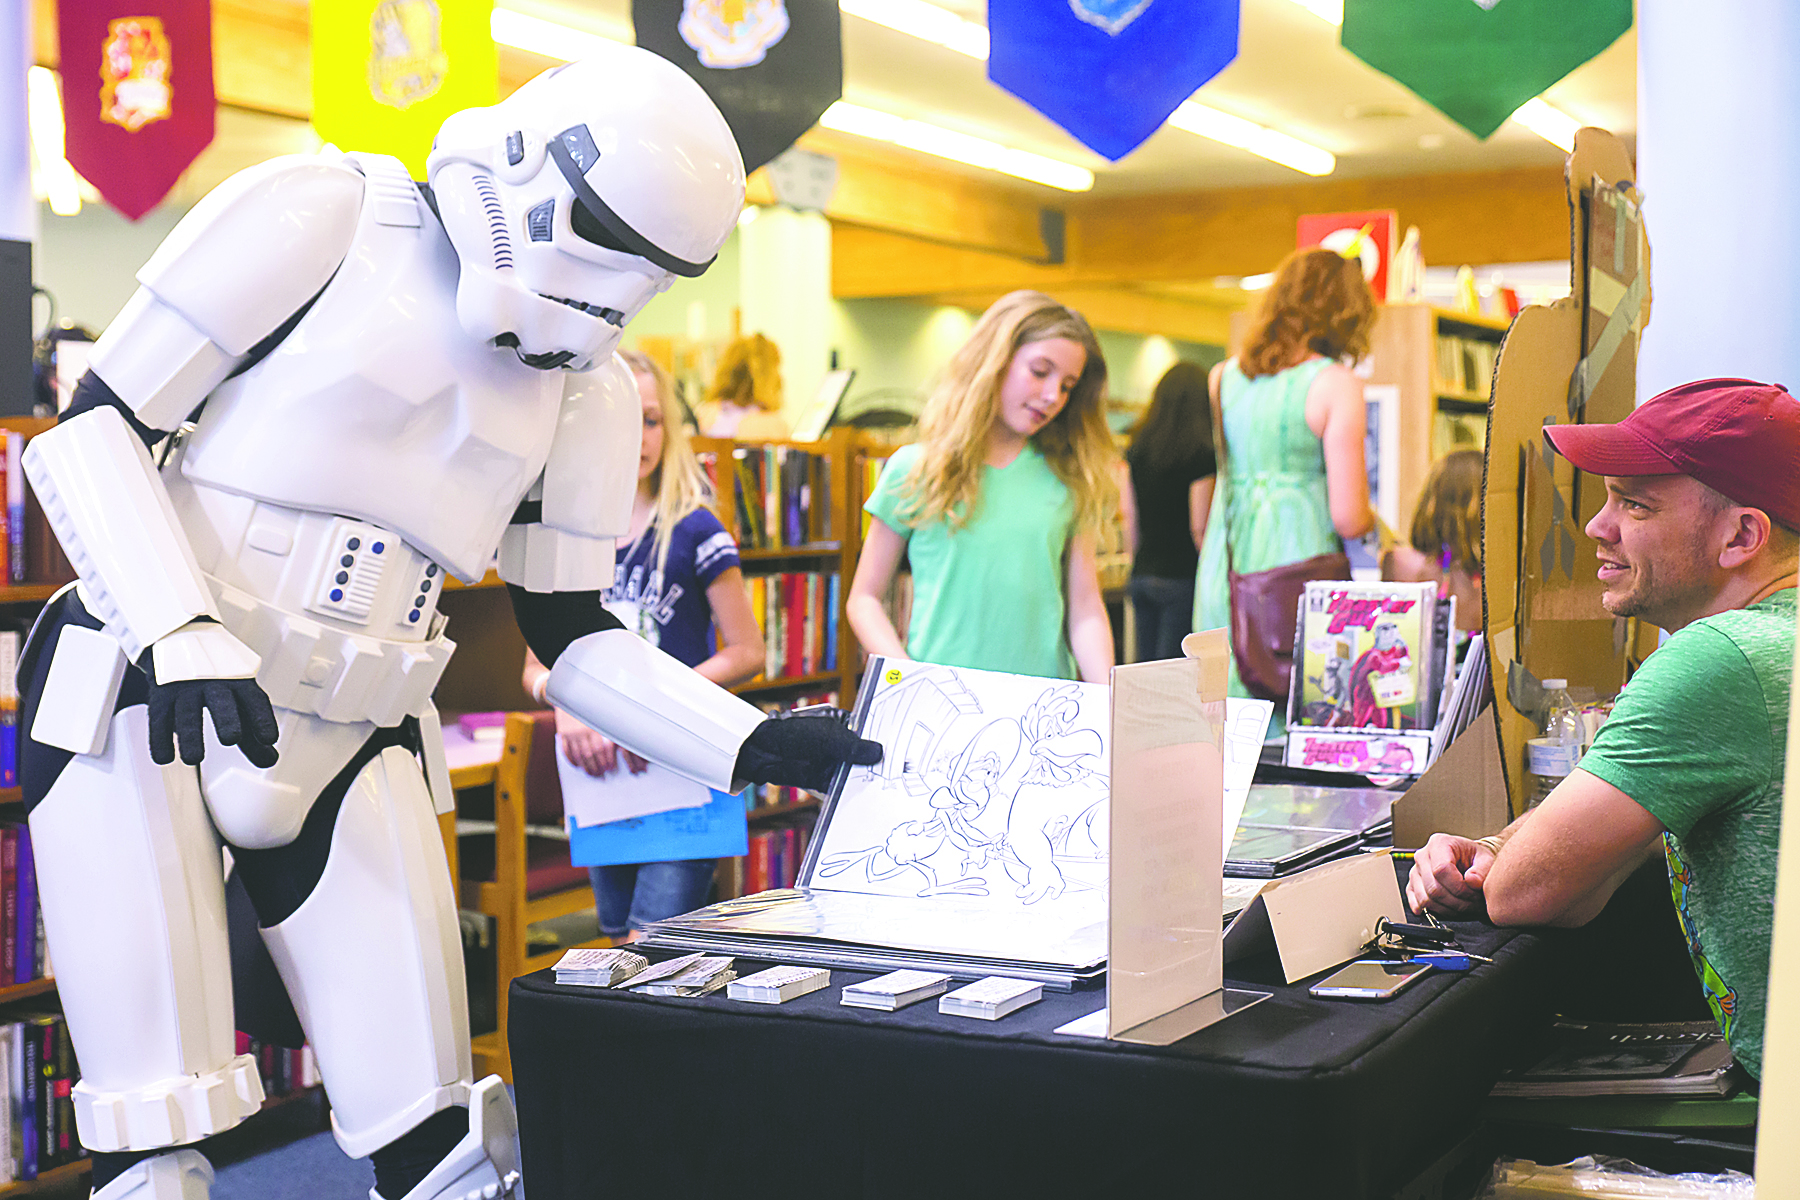 3rd annual Comic Con will be out of this world